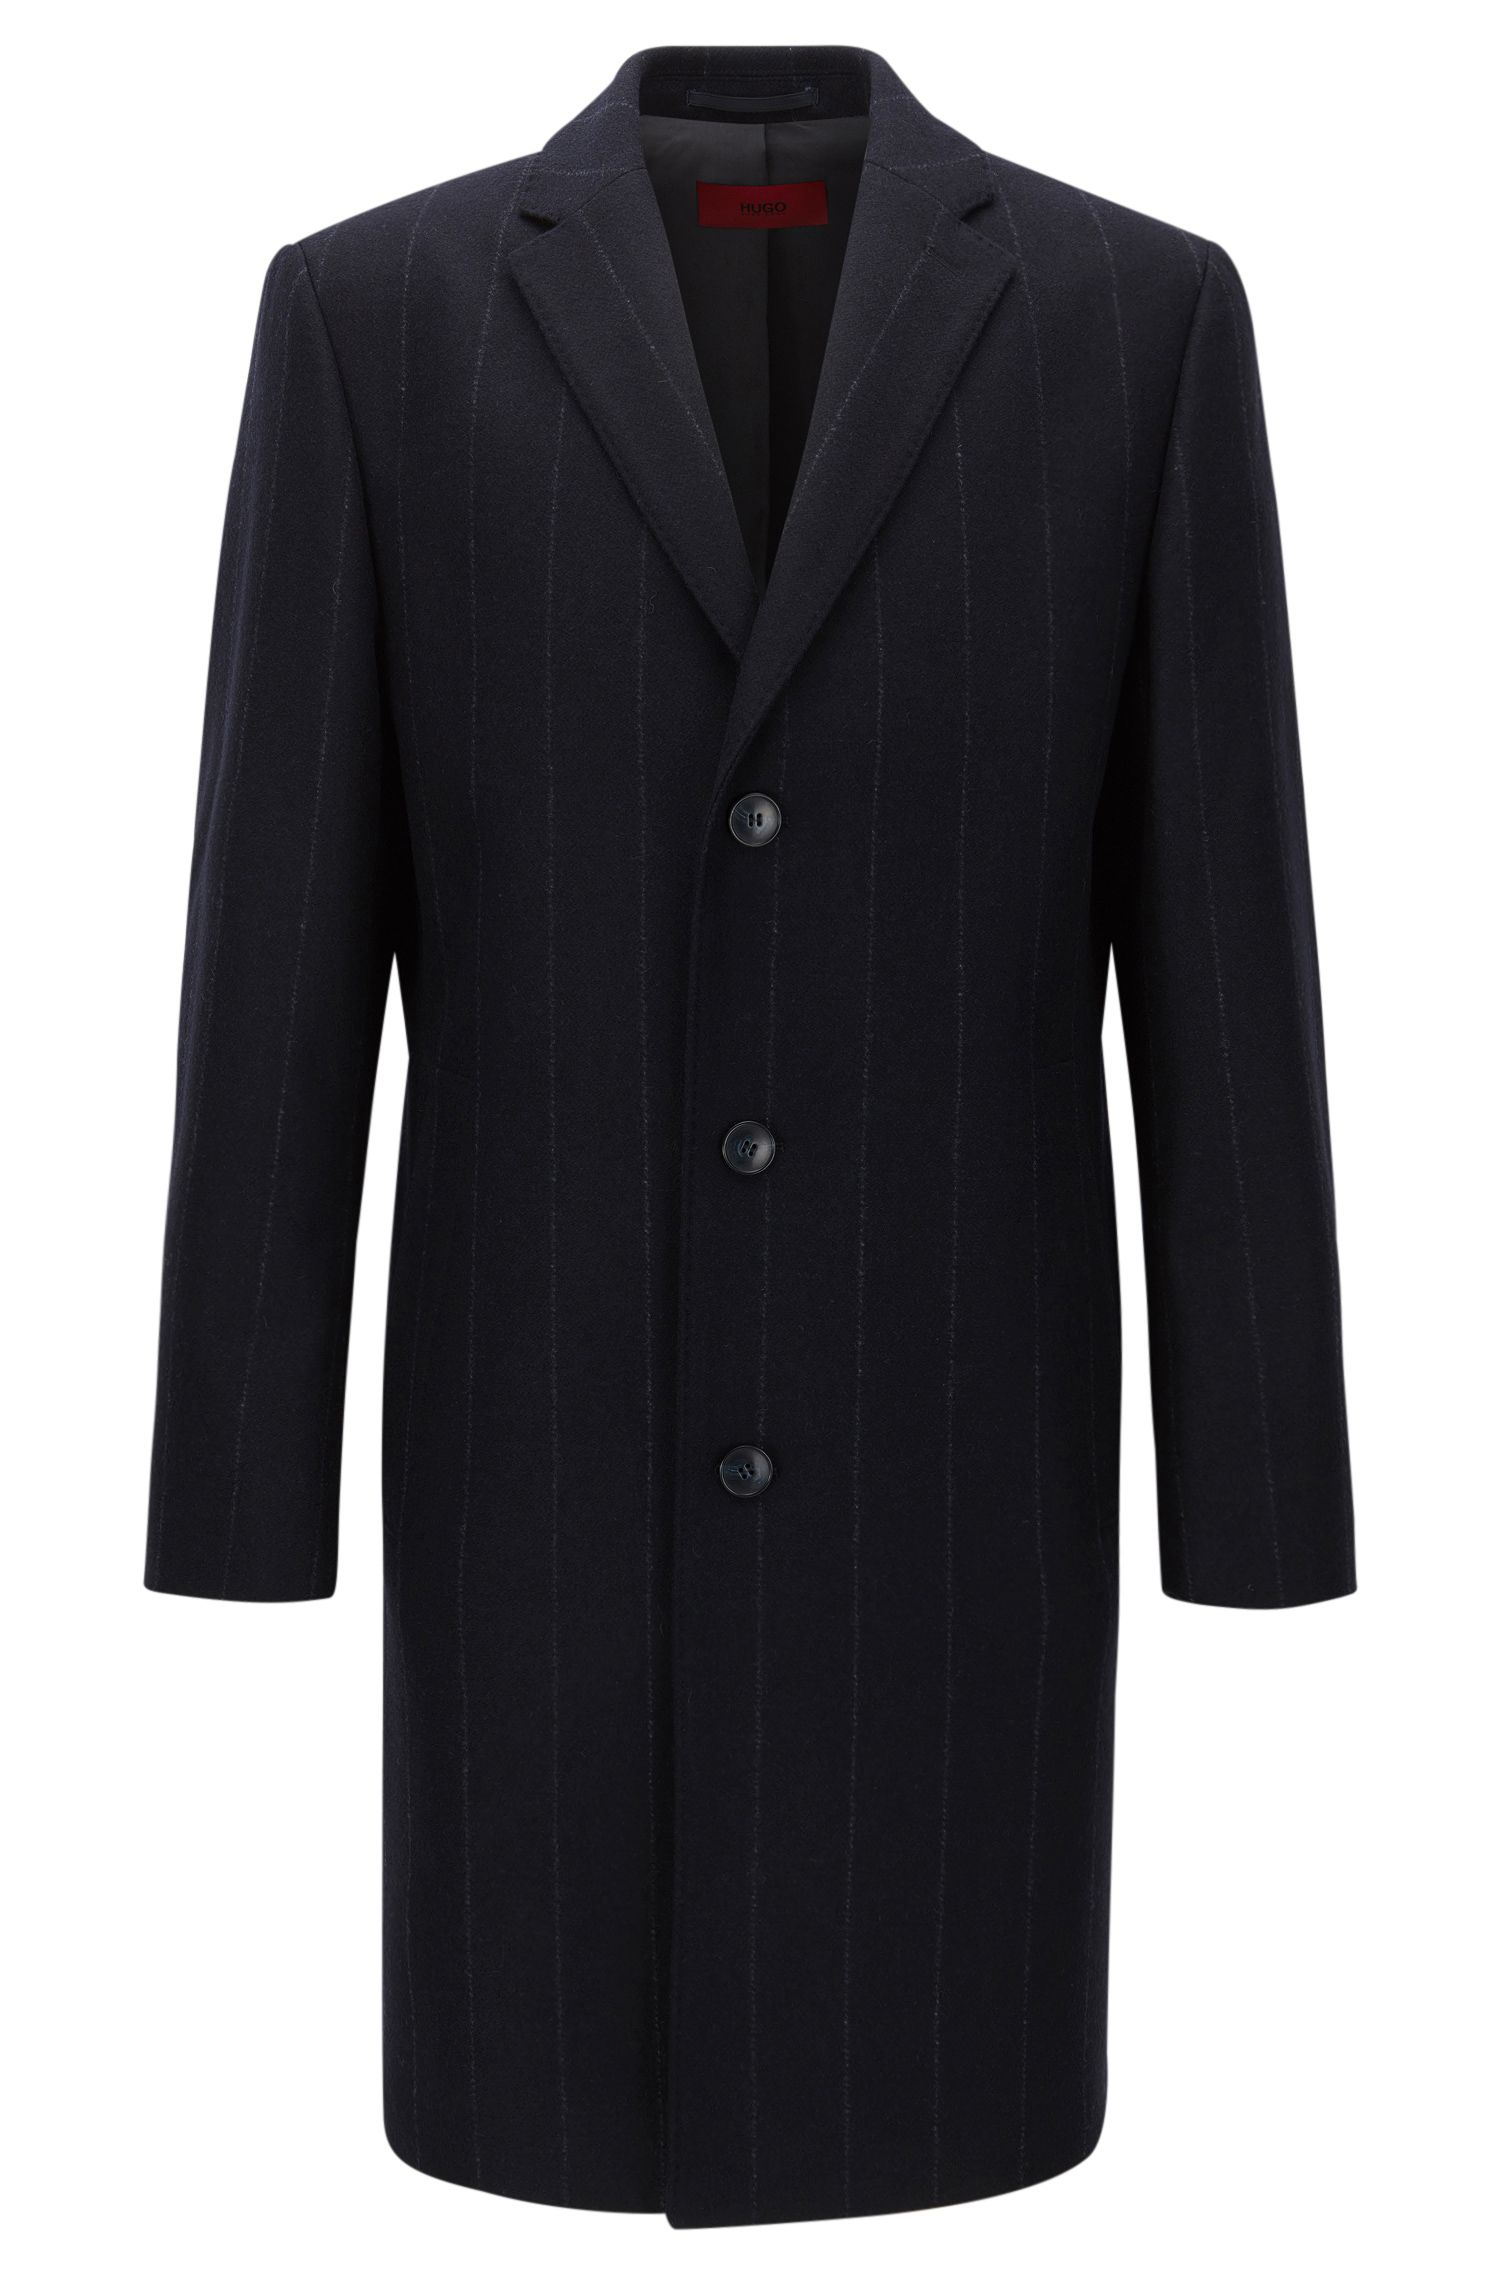 Regular fit chalk-stripe coat in a wool blend